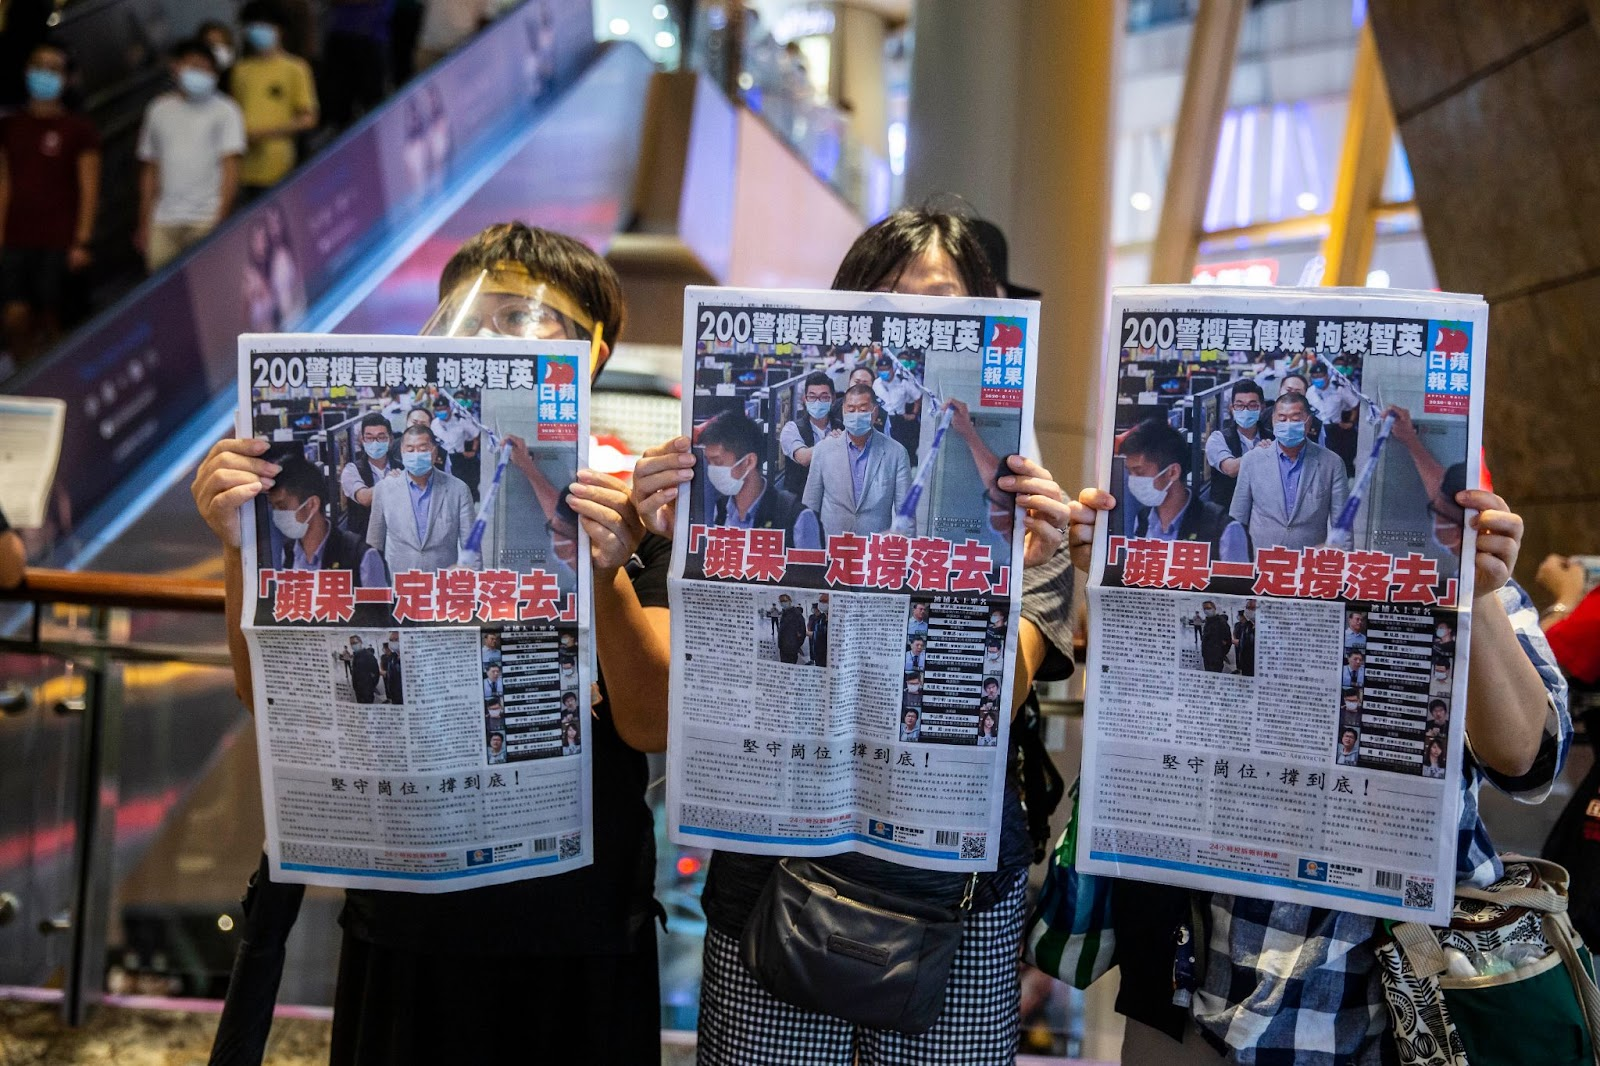 People hold up copies of Apple Daily as they protest for press freedom inside a mall in Hong Kong on August 11, 2020, a day after authorities conducted a search of the newspaper's headquarters following the arrest of founder Jimmy Lai under the new National Security Law. Hong Kongers rushed to buy pro-democracy newspaper Apple Daily on August 11 in a show of support for its owner, who was arrested a day earlier as police rounded up critics of China.